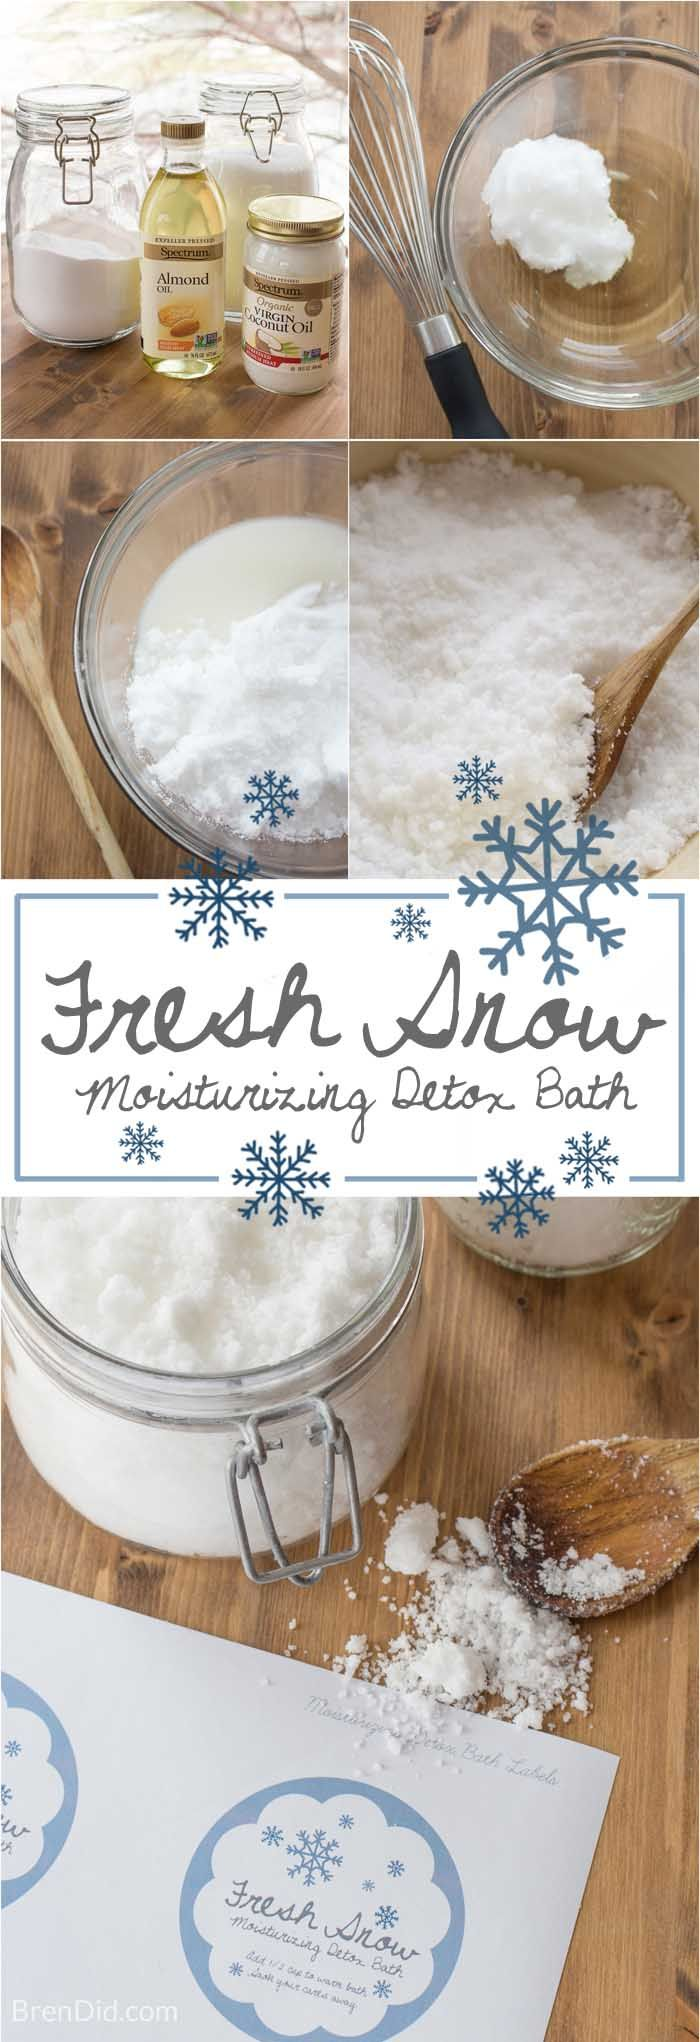 Detox Bath | Moisturizing Bath | Bath Melts | Bath Soak - All-natural moisturizing detox bath soothes skin, raises magnesium levels & promotes better sleep.  via @brendidblog